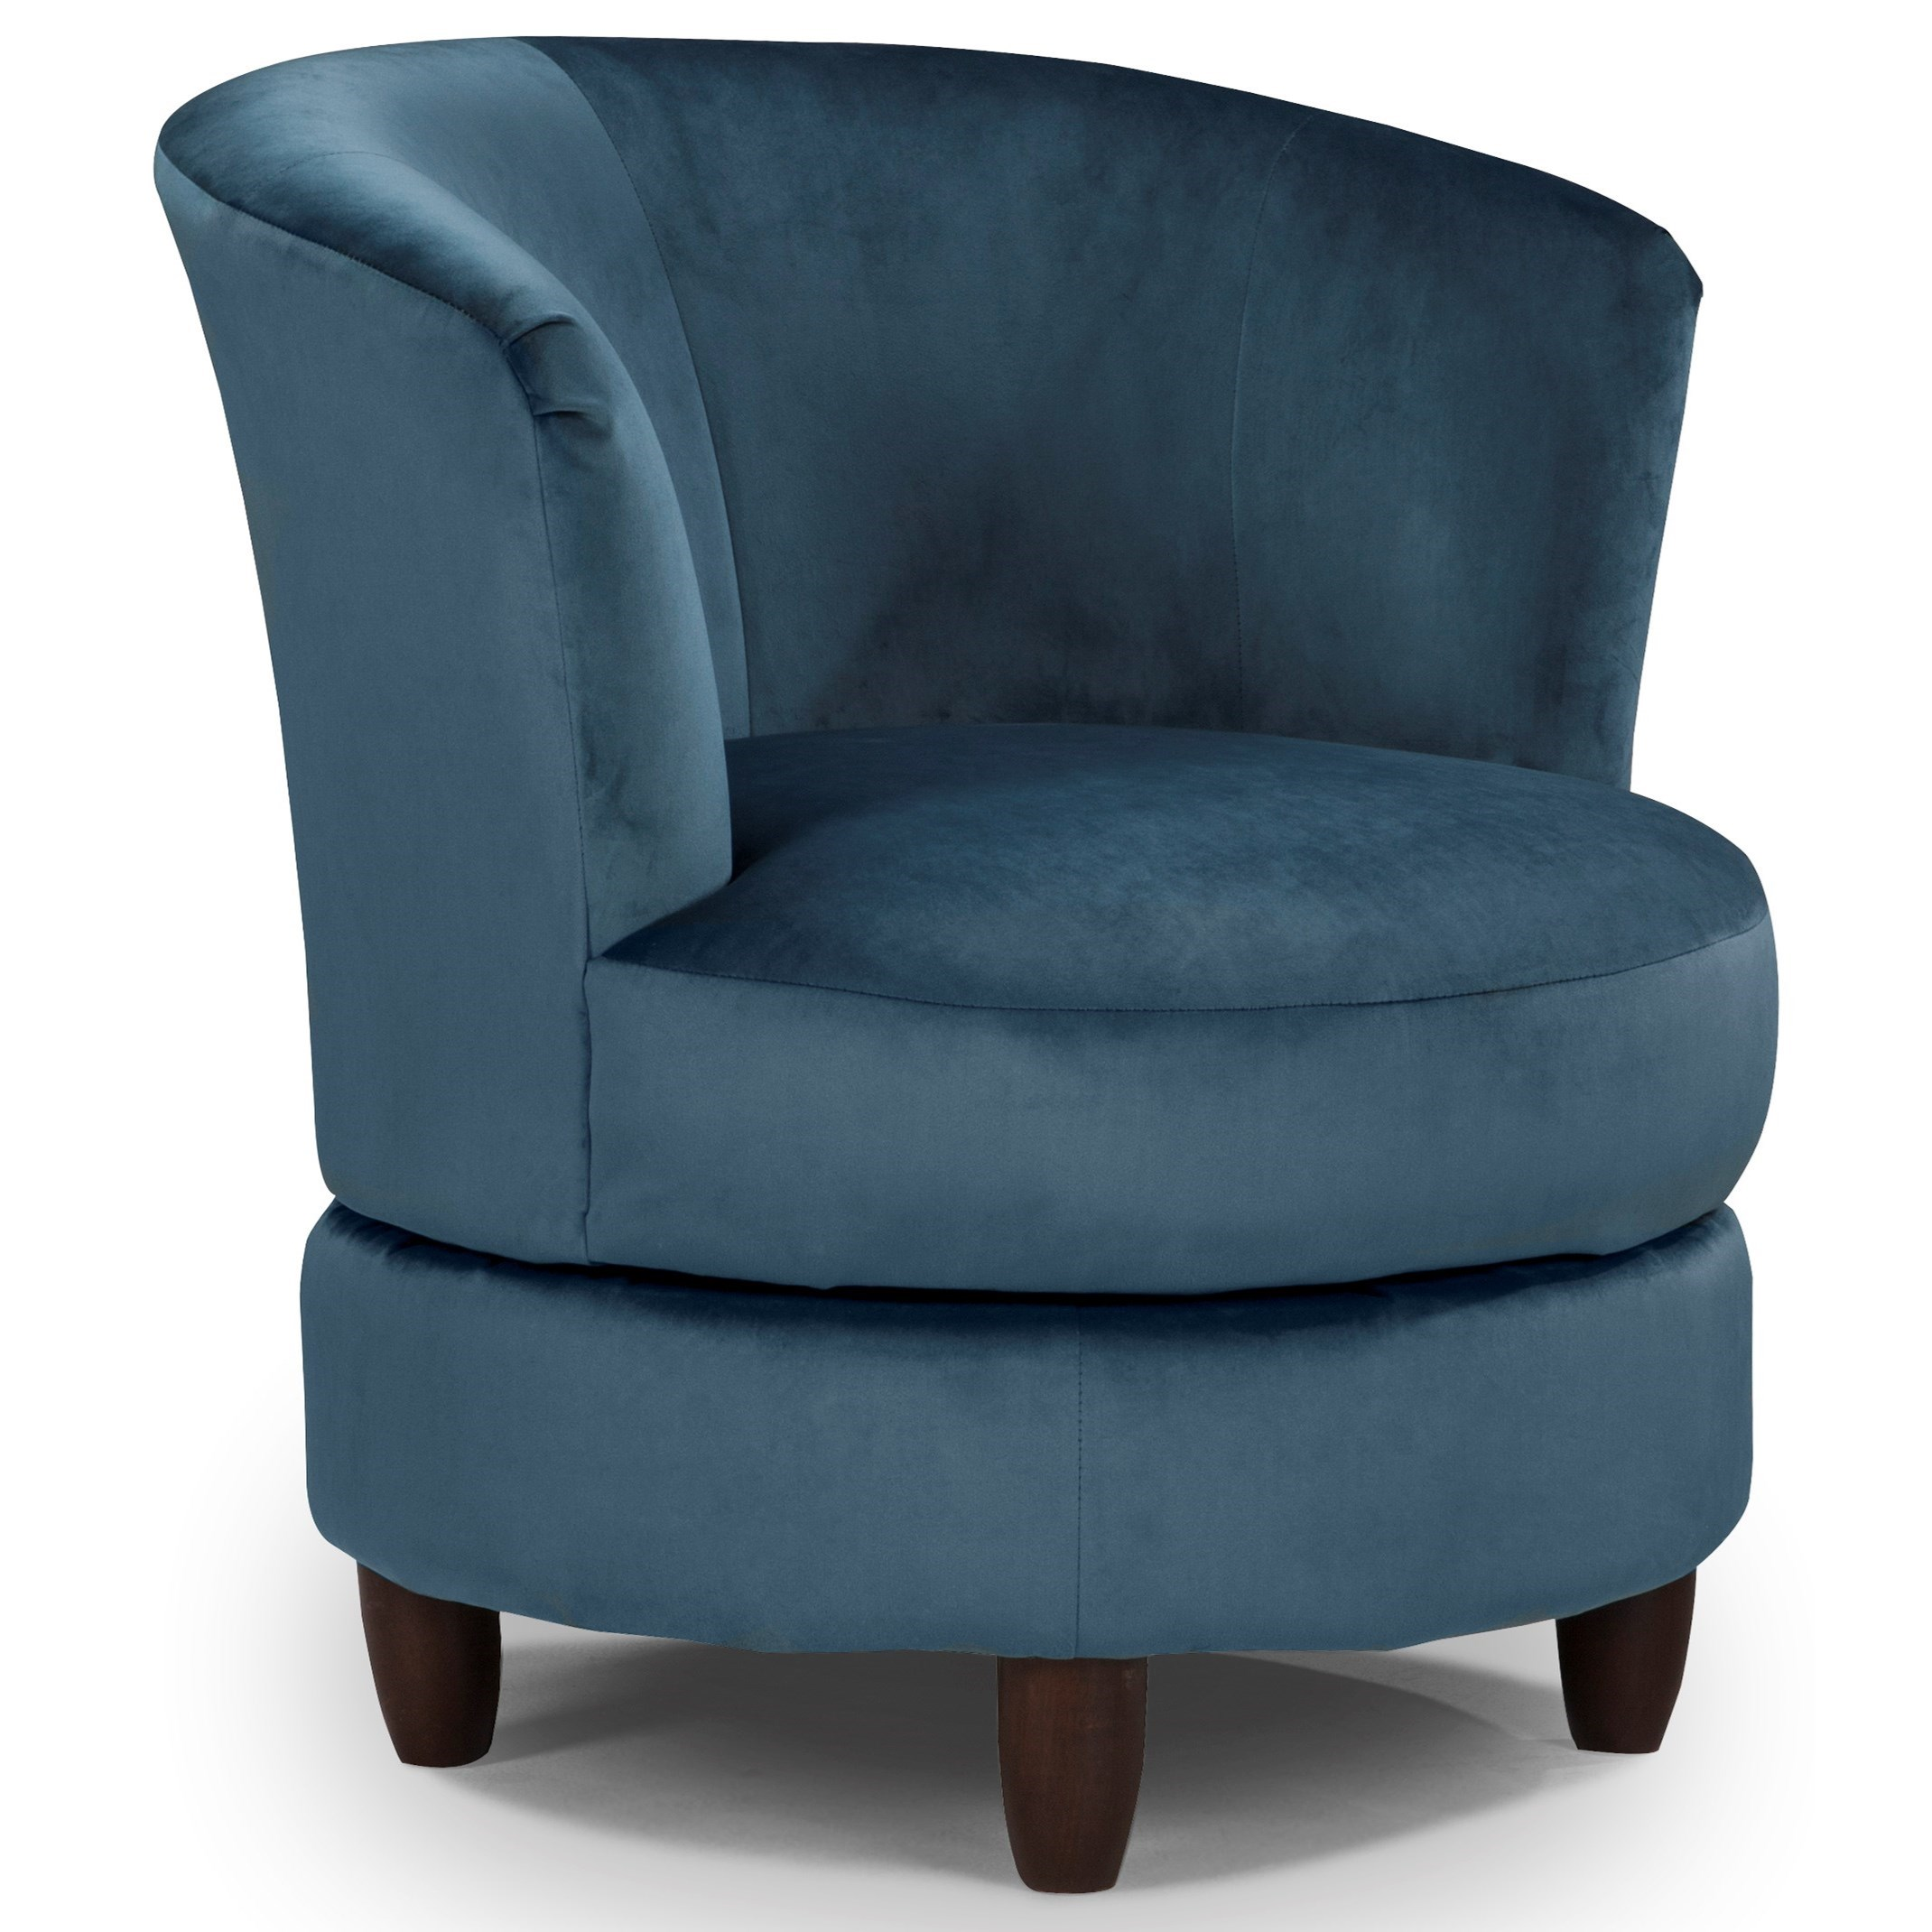 Chairs - Swivel Barrel Palmona Swivel Chair by Best Home Furnishings at Lapeer Furniture & Mattress Center